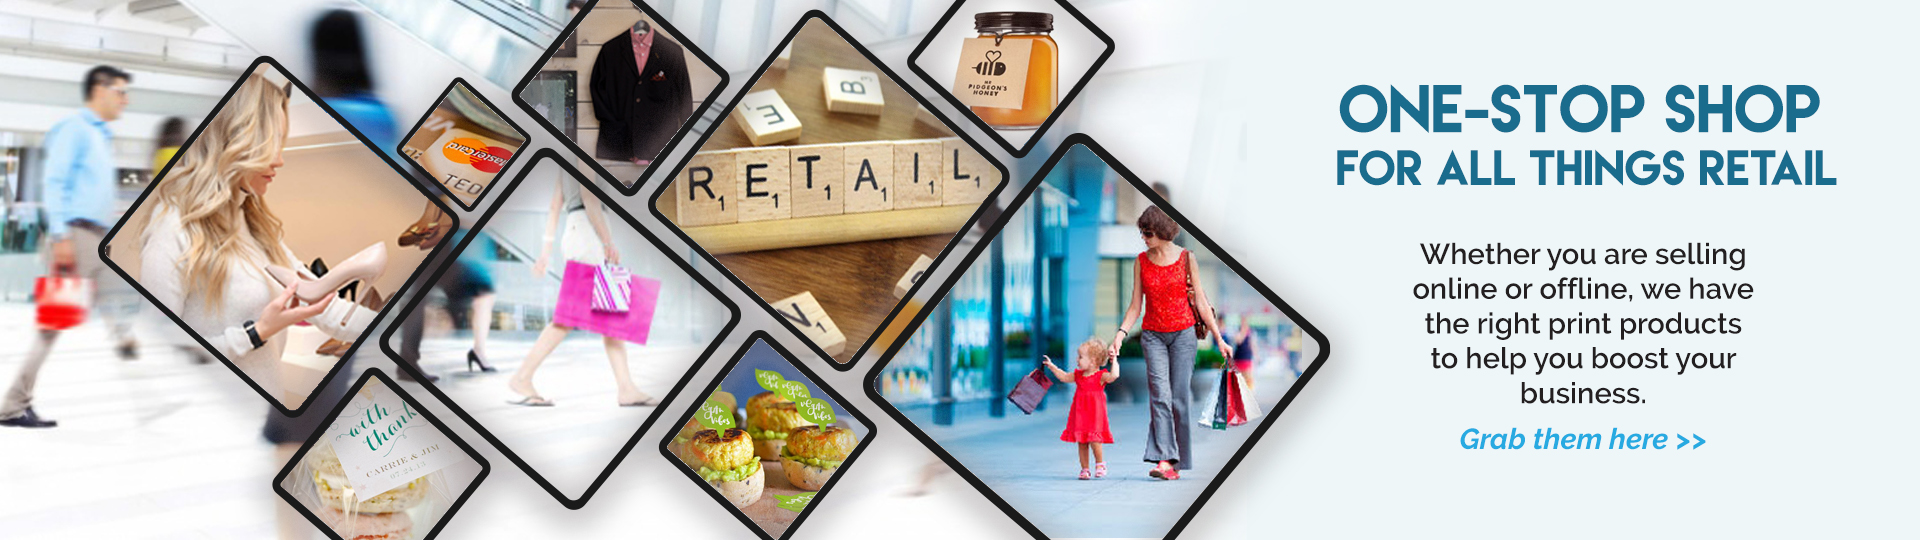 One-Stop Shop for Small & Medium Retailers